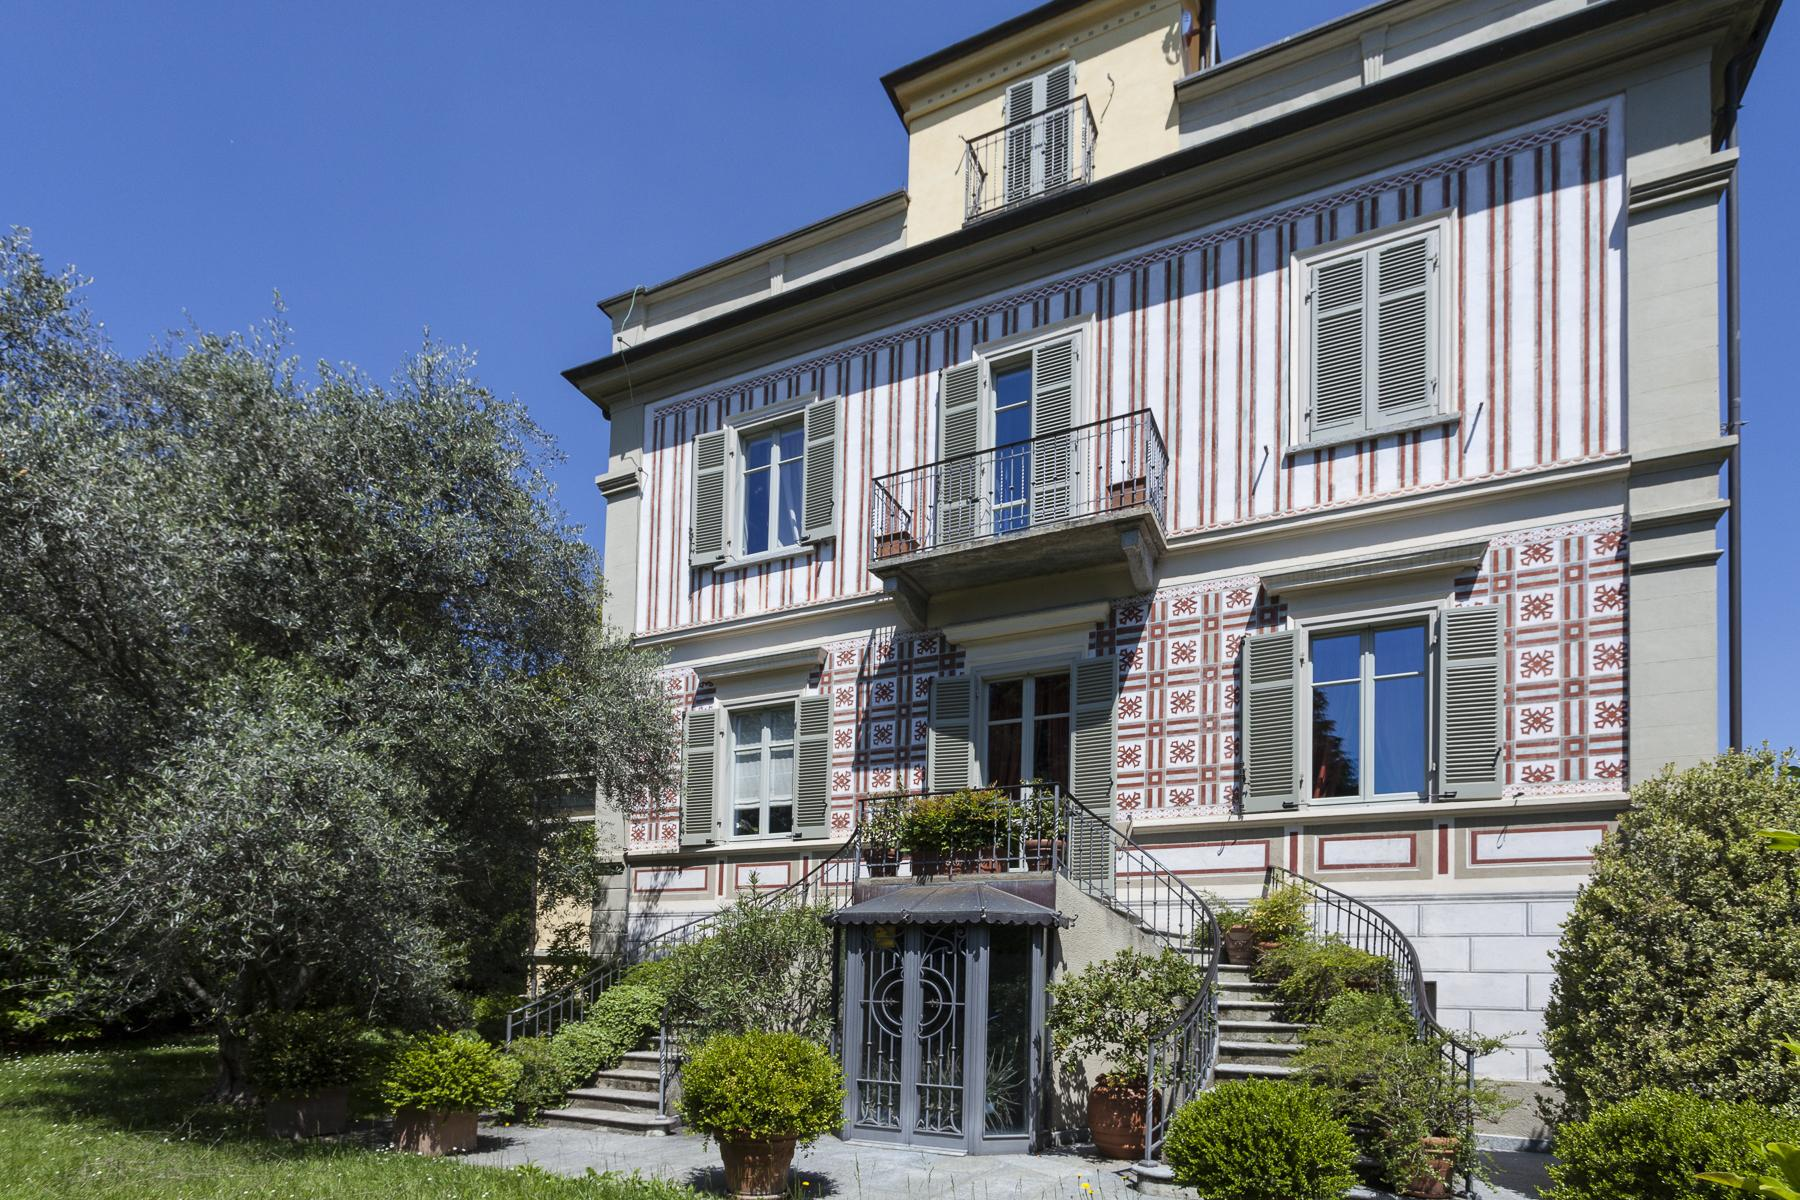 Elegant Art Nouveau villa with private park - 1